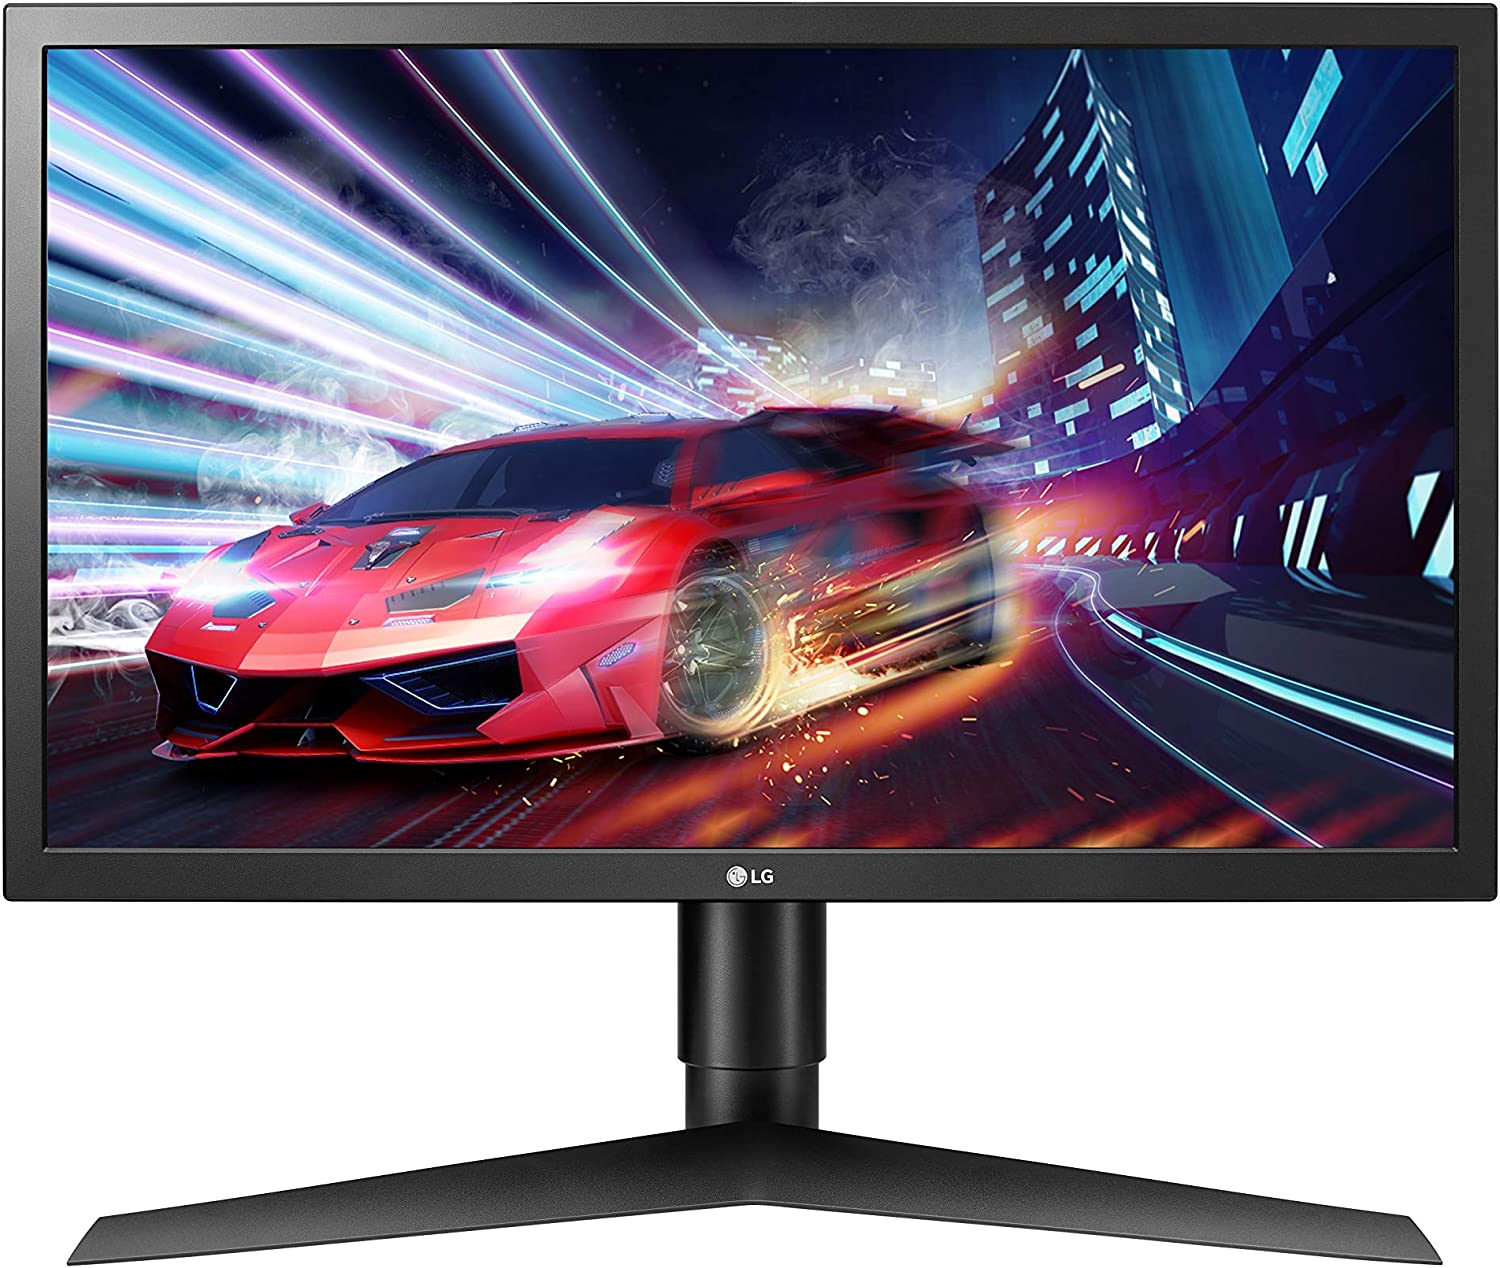 LG 24GL650-B 24 Inch Full HD Ultragear Gaming Monitor with FreeSync 144Hz Refresh Rate and 1ms Response Time